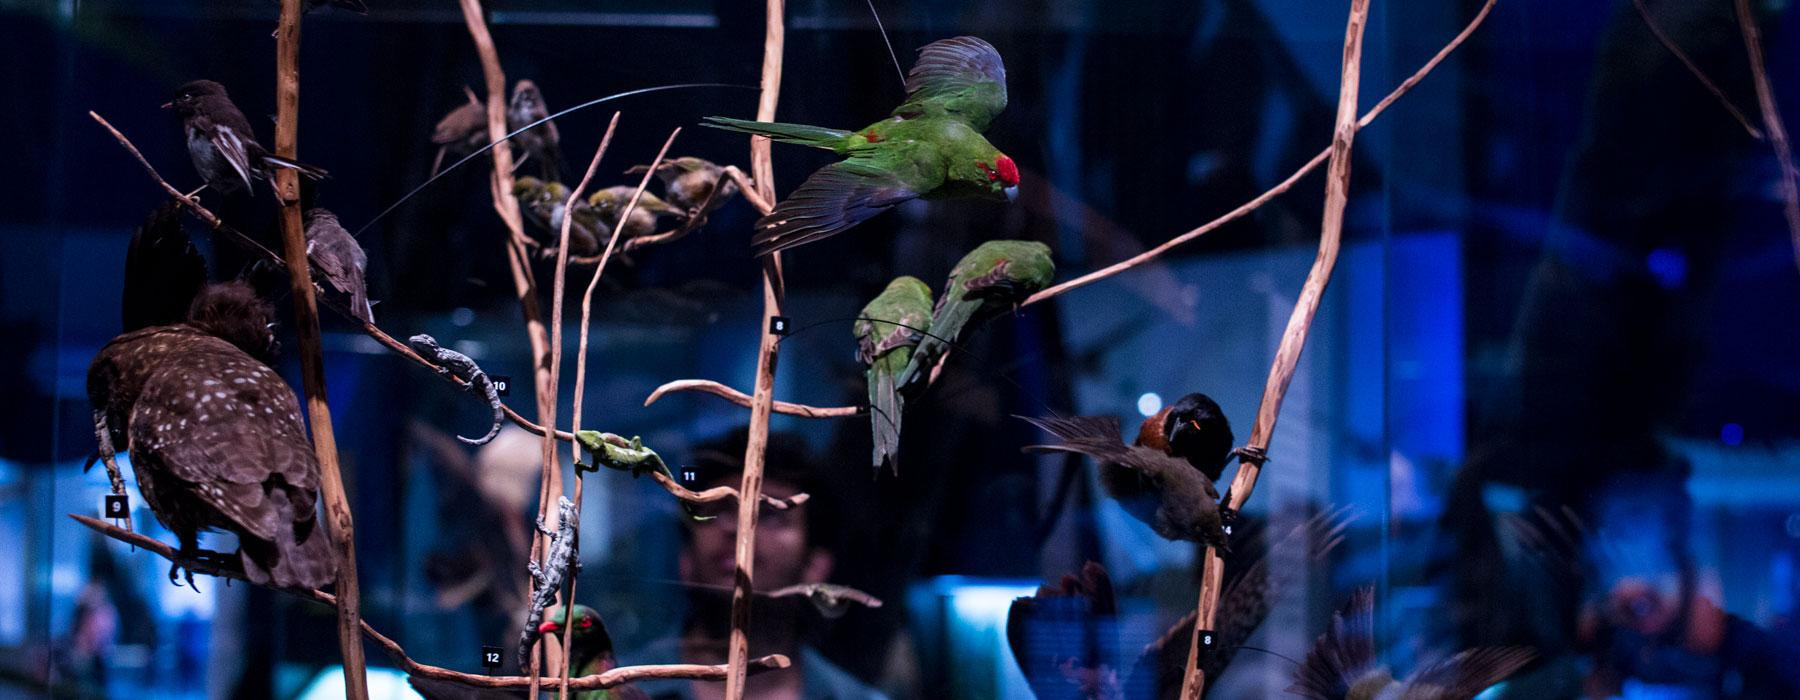 Taxidermy birds in the Mountains to Sea exhibition